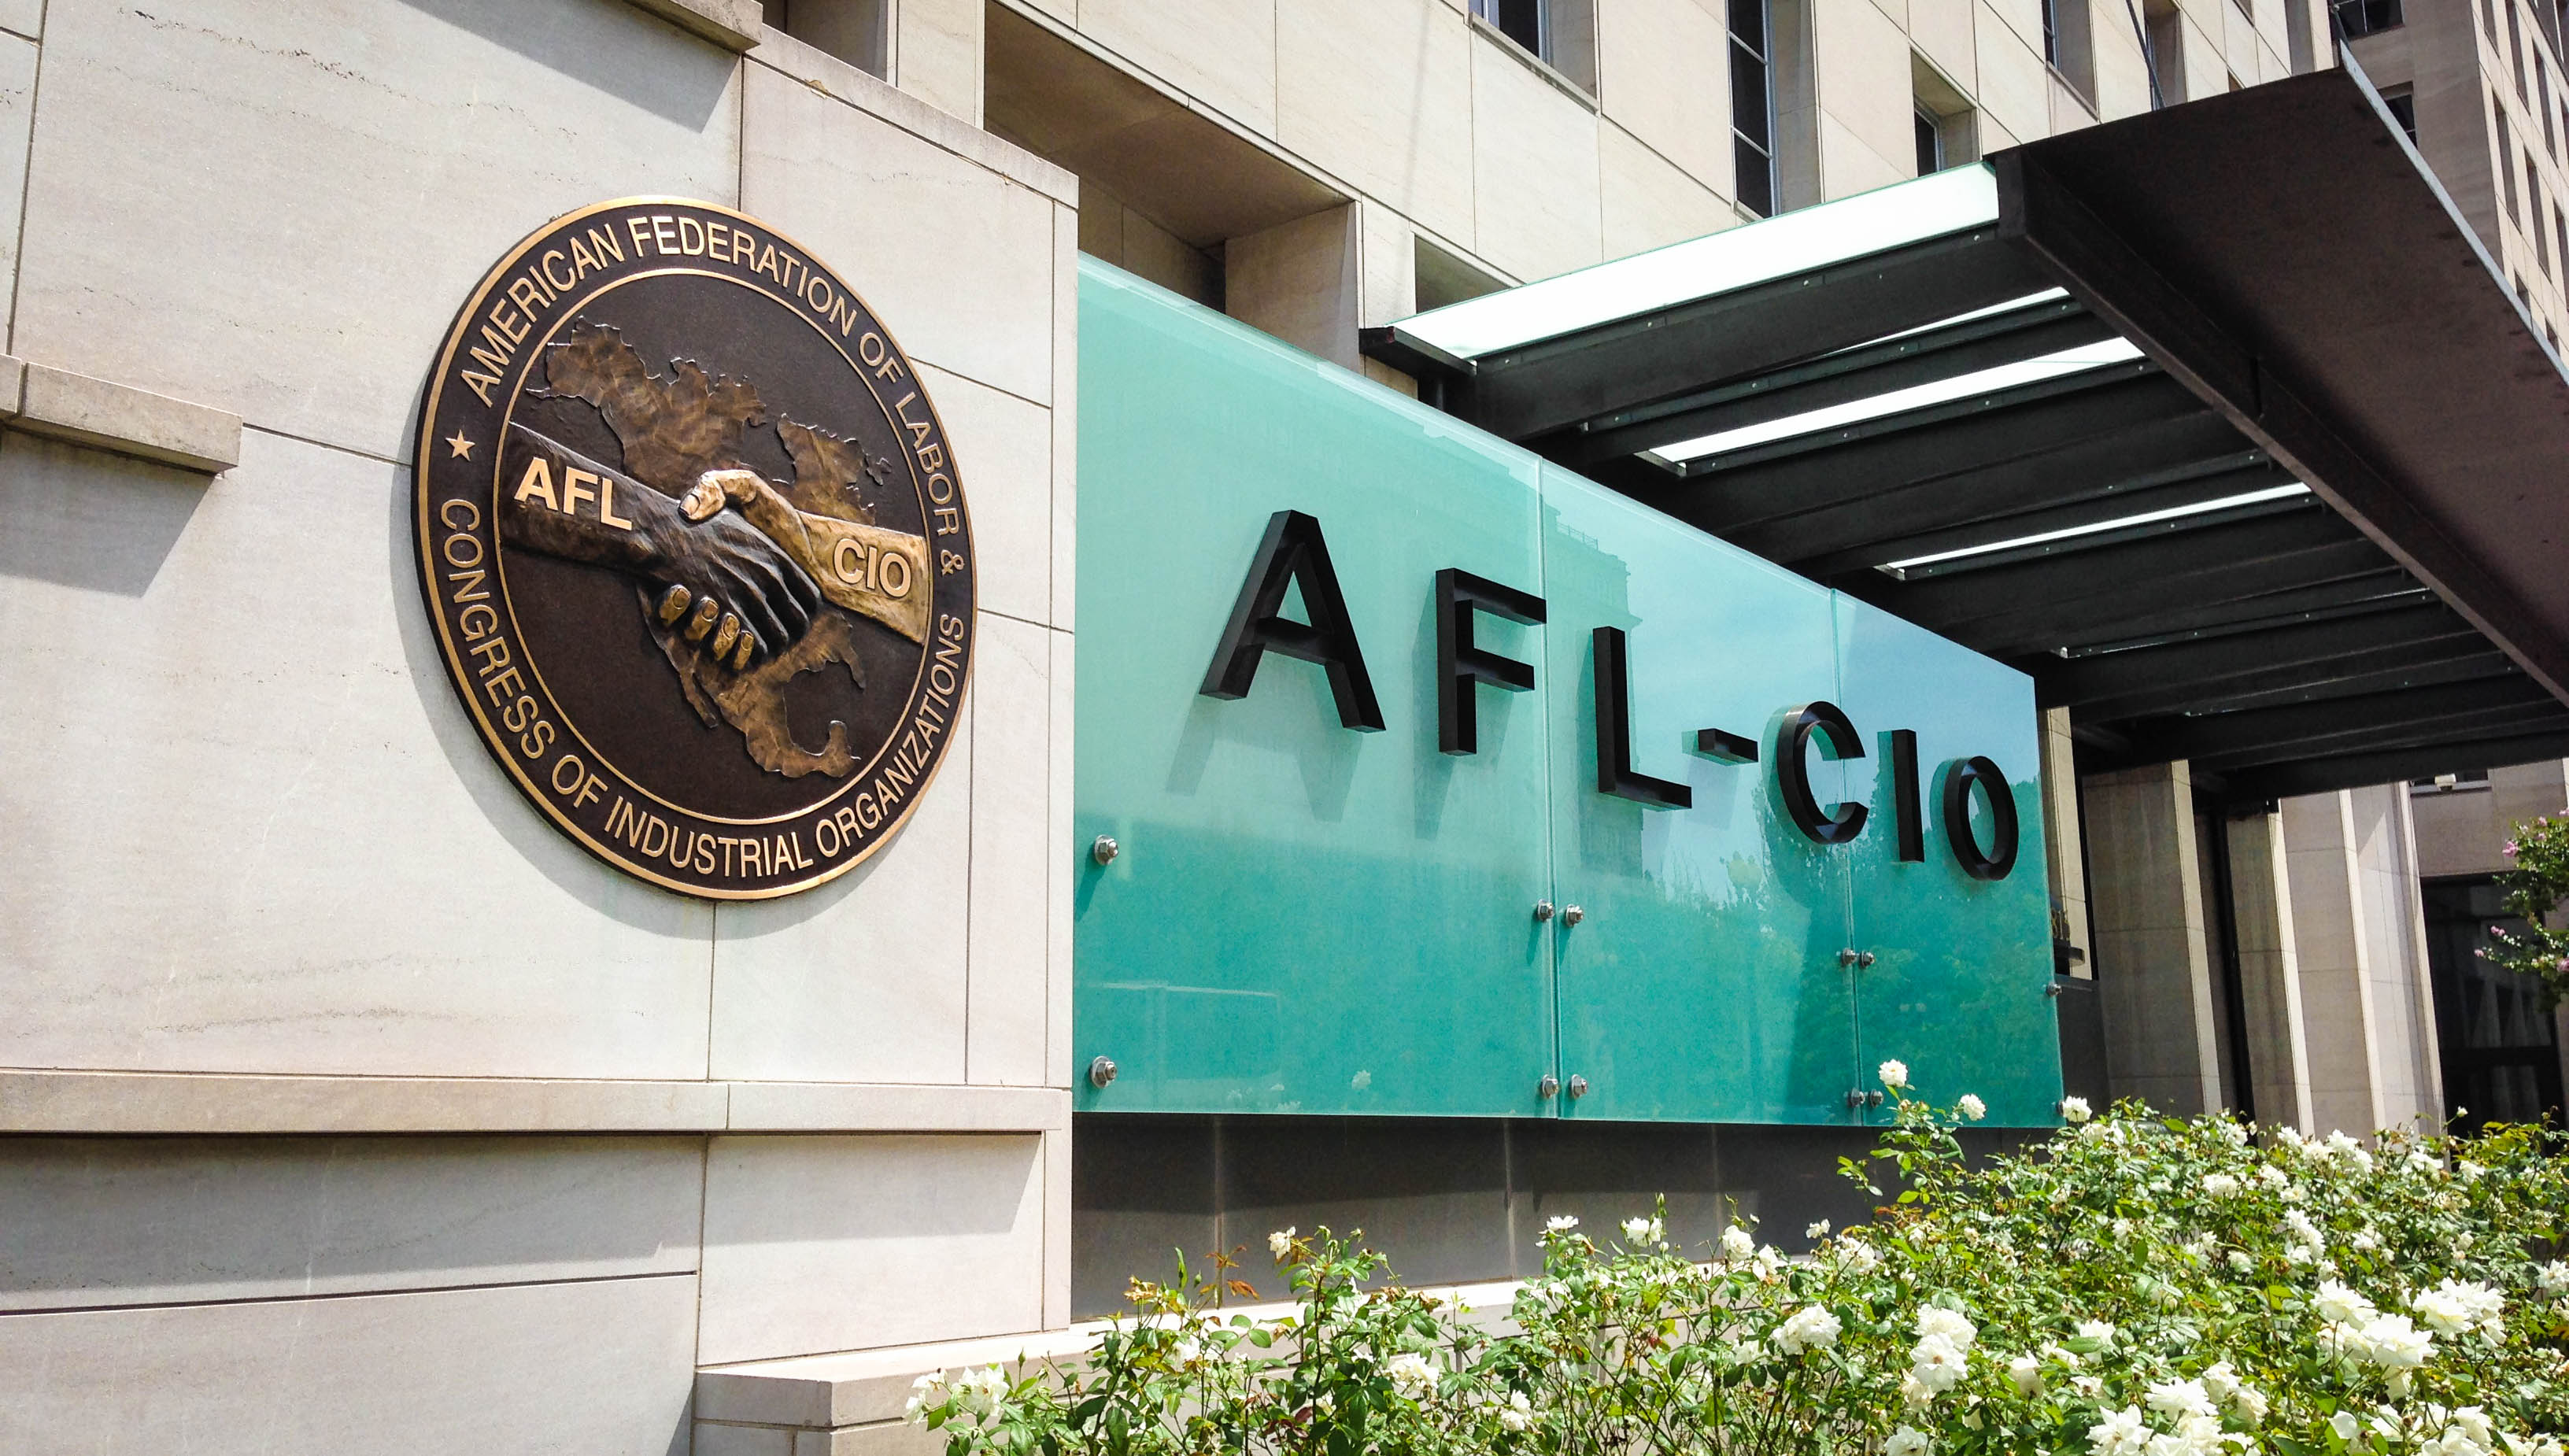 jacobinmag.com: Reckoning With the AFL-CIO's Imperialist History